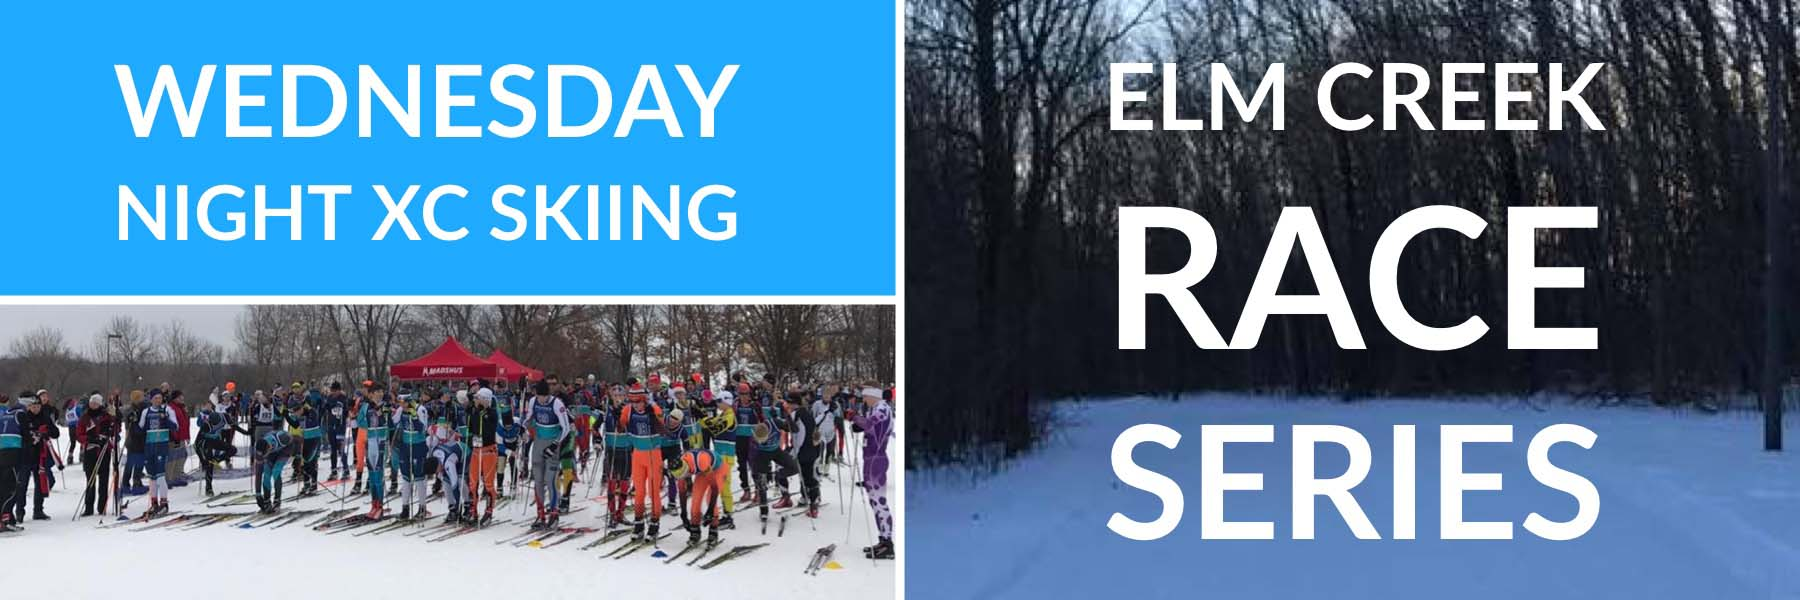 Elm Creek Ski Race Series '17-'18